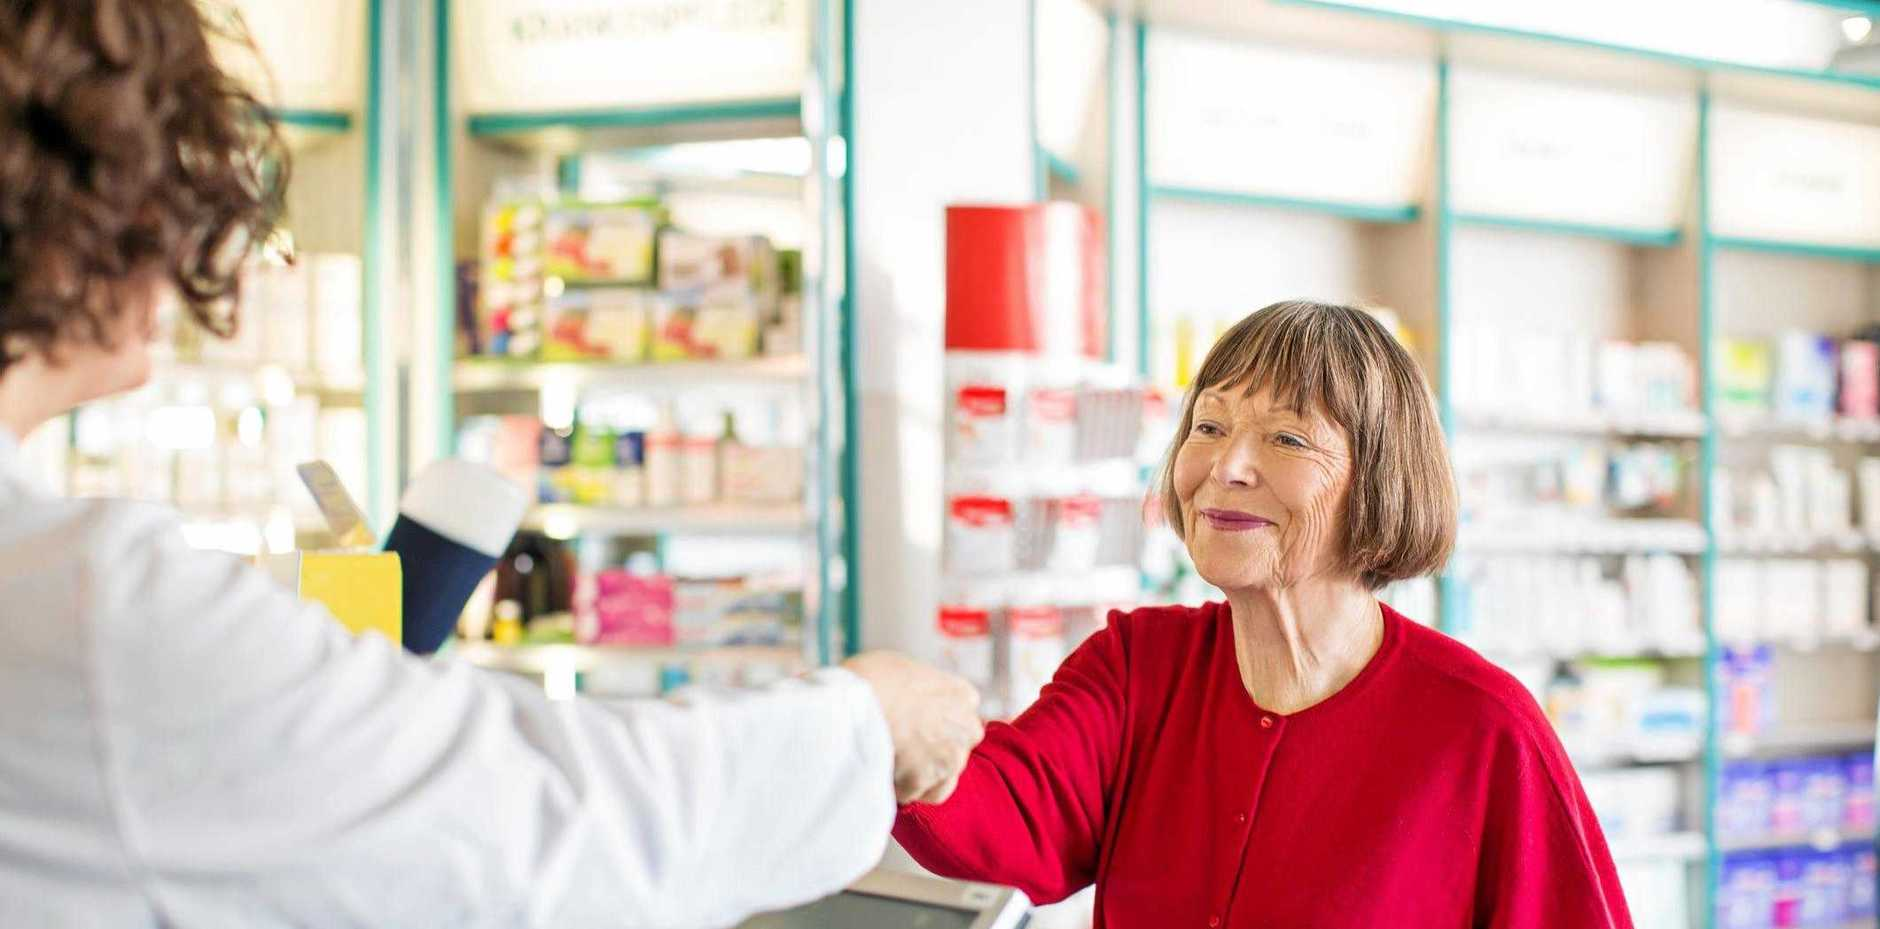 MEDICATION TIPS: Learn some valuable tips for dealing with old medications, including not throwing them in the toilet or bin.